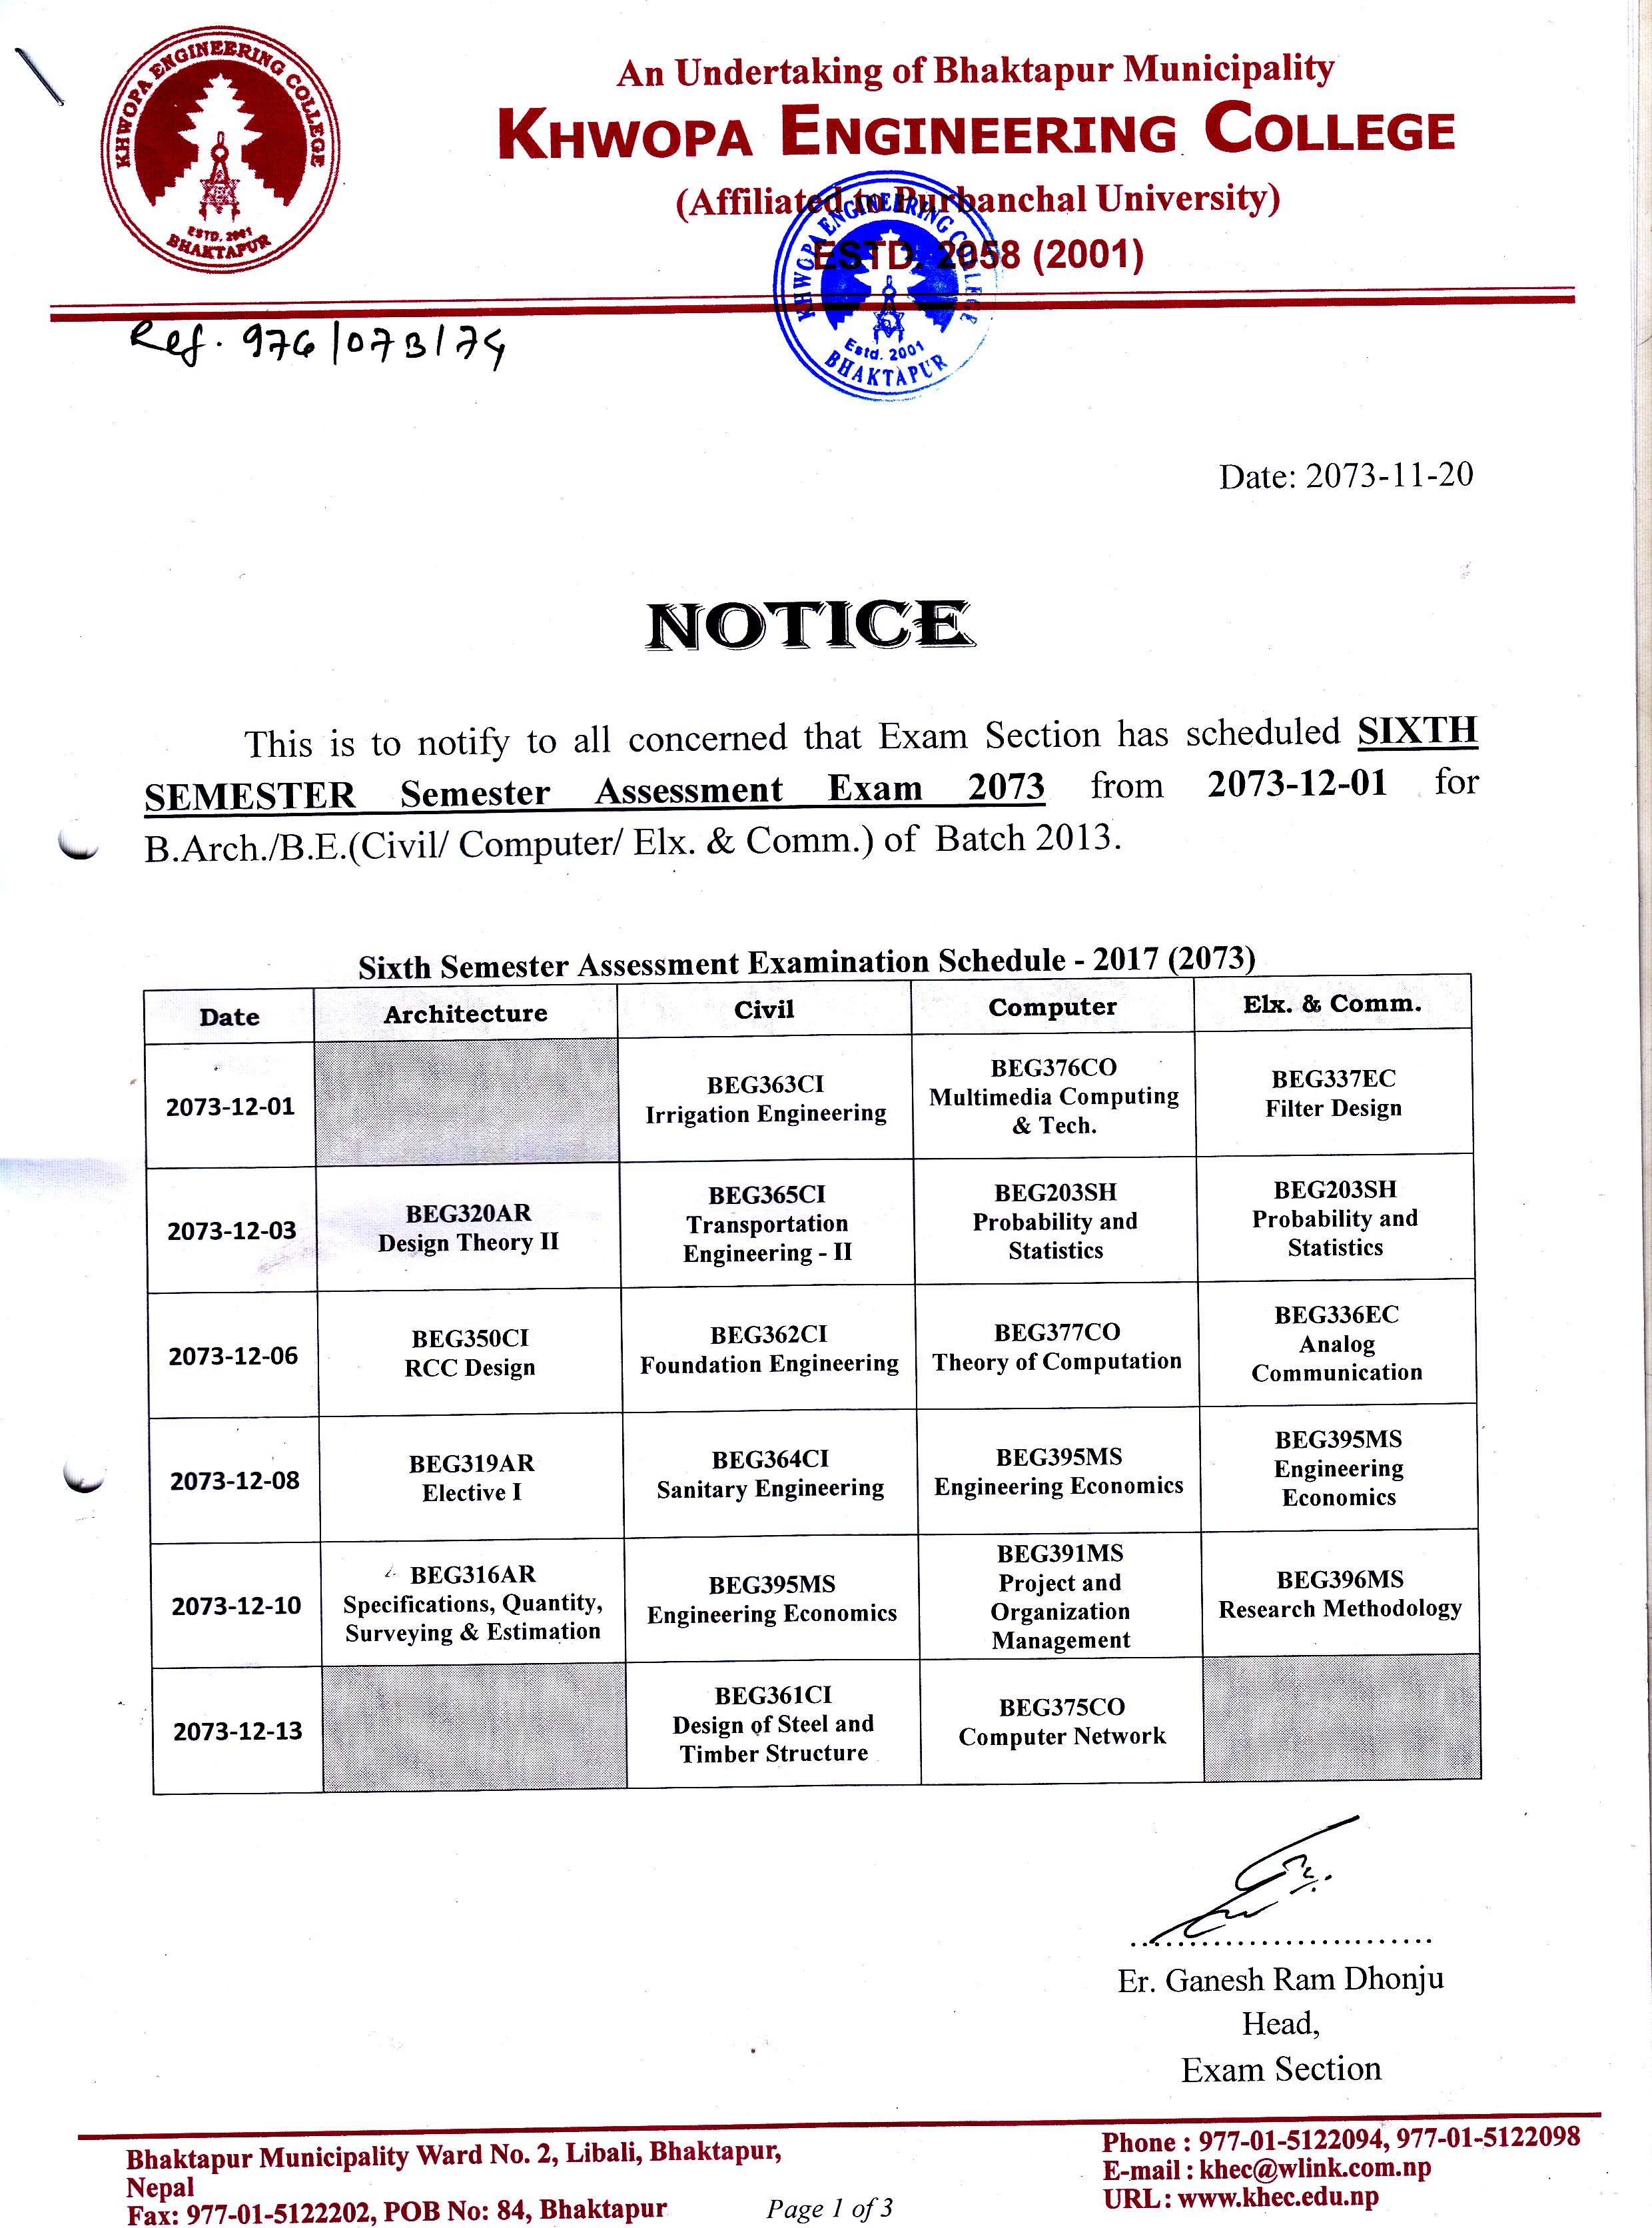 Sixth Semester Assessment Exam Notice